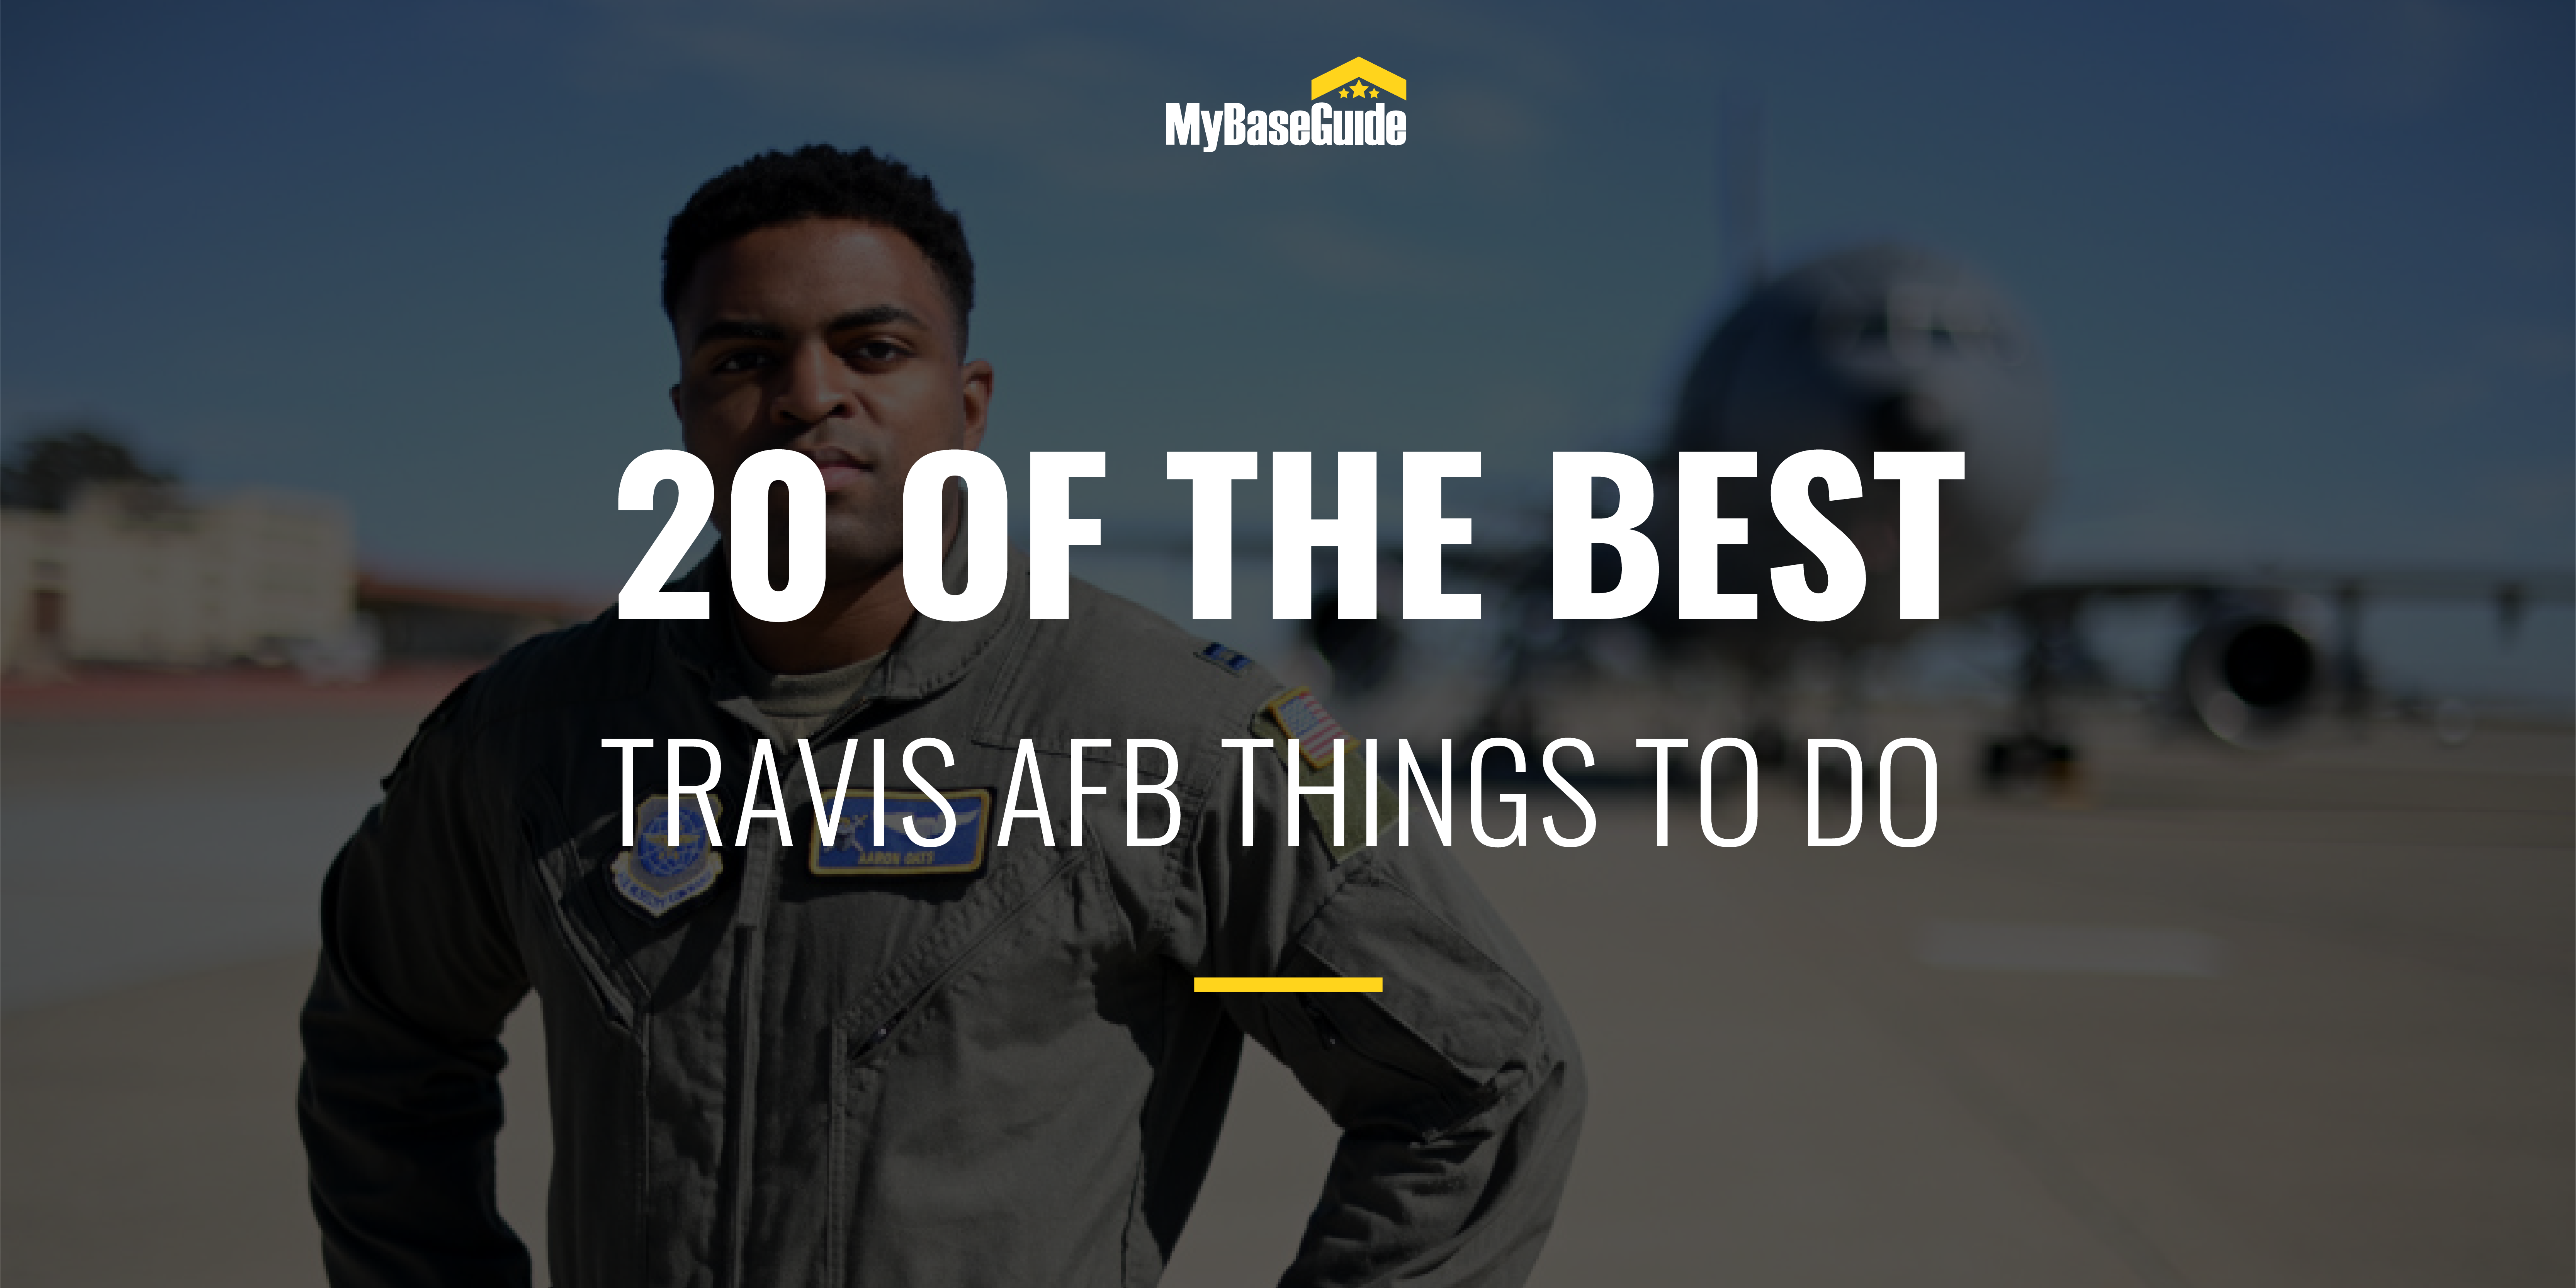 20 Of the Best Things to Do Near Travis AFB